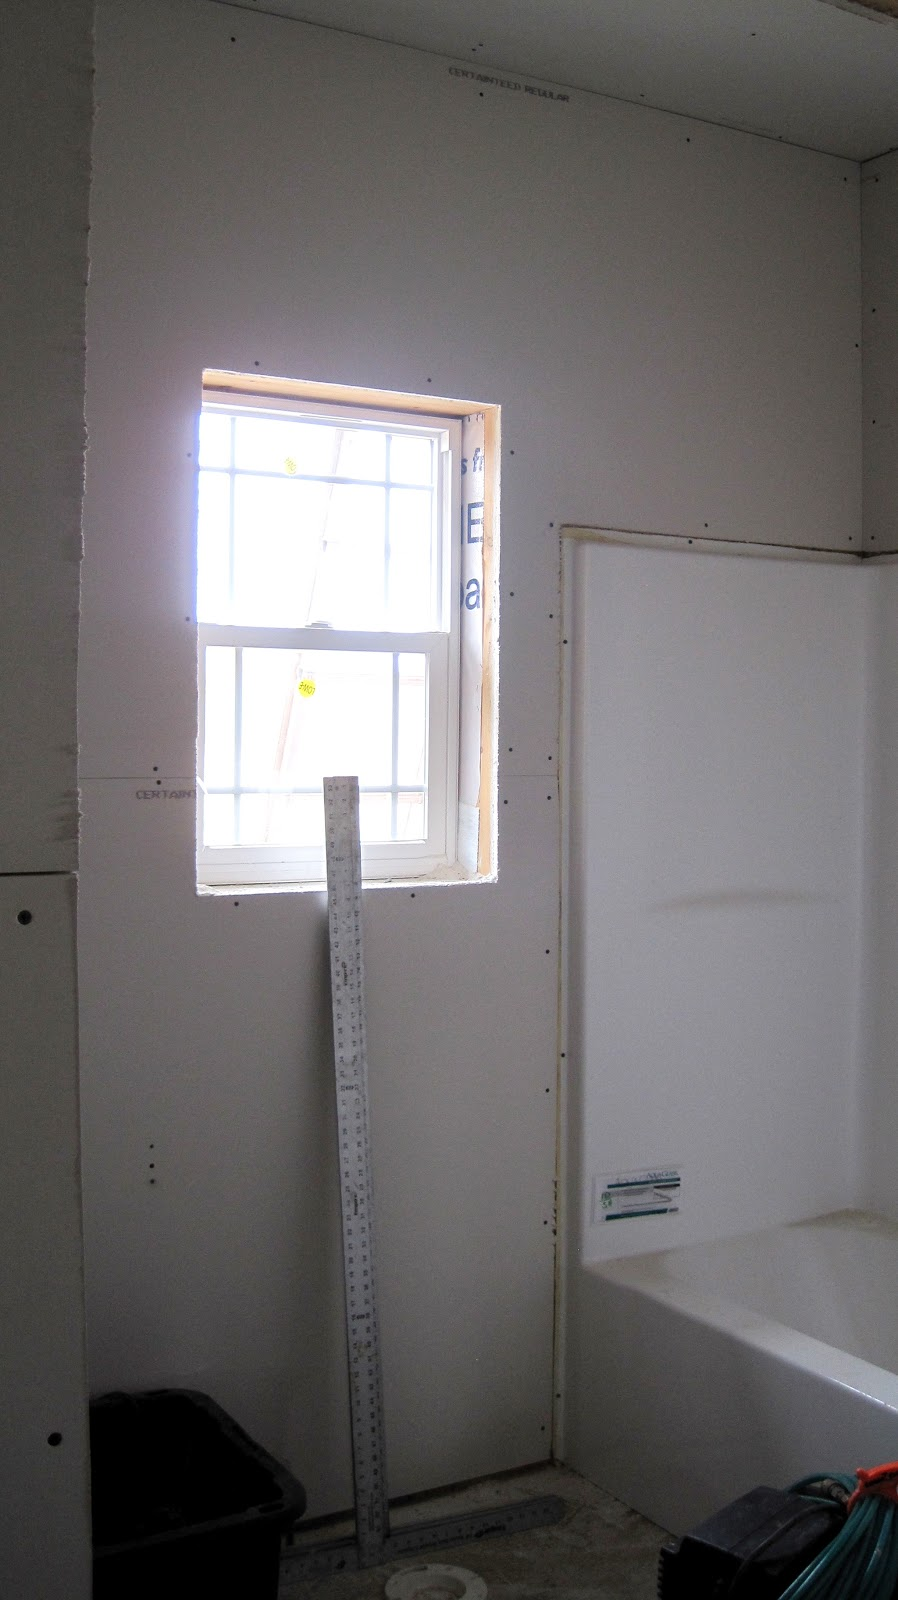 Bathroom drywall 28 images can i put sheetrock above a shower surround wall bathroom What sheetrock to use in bathroom